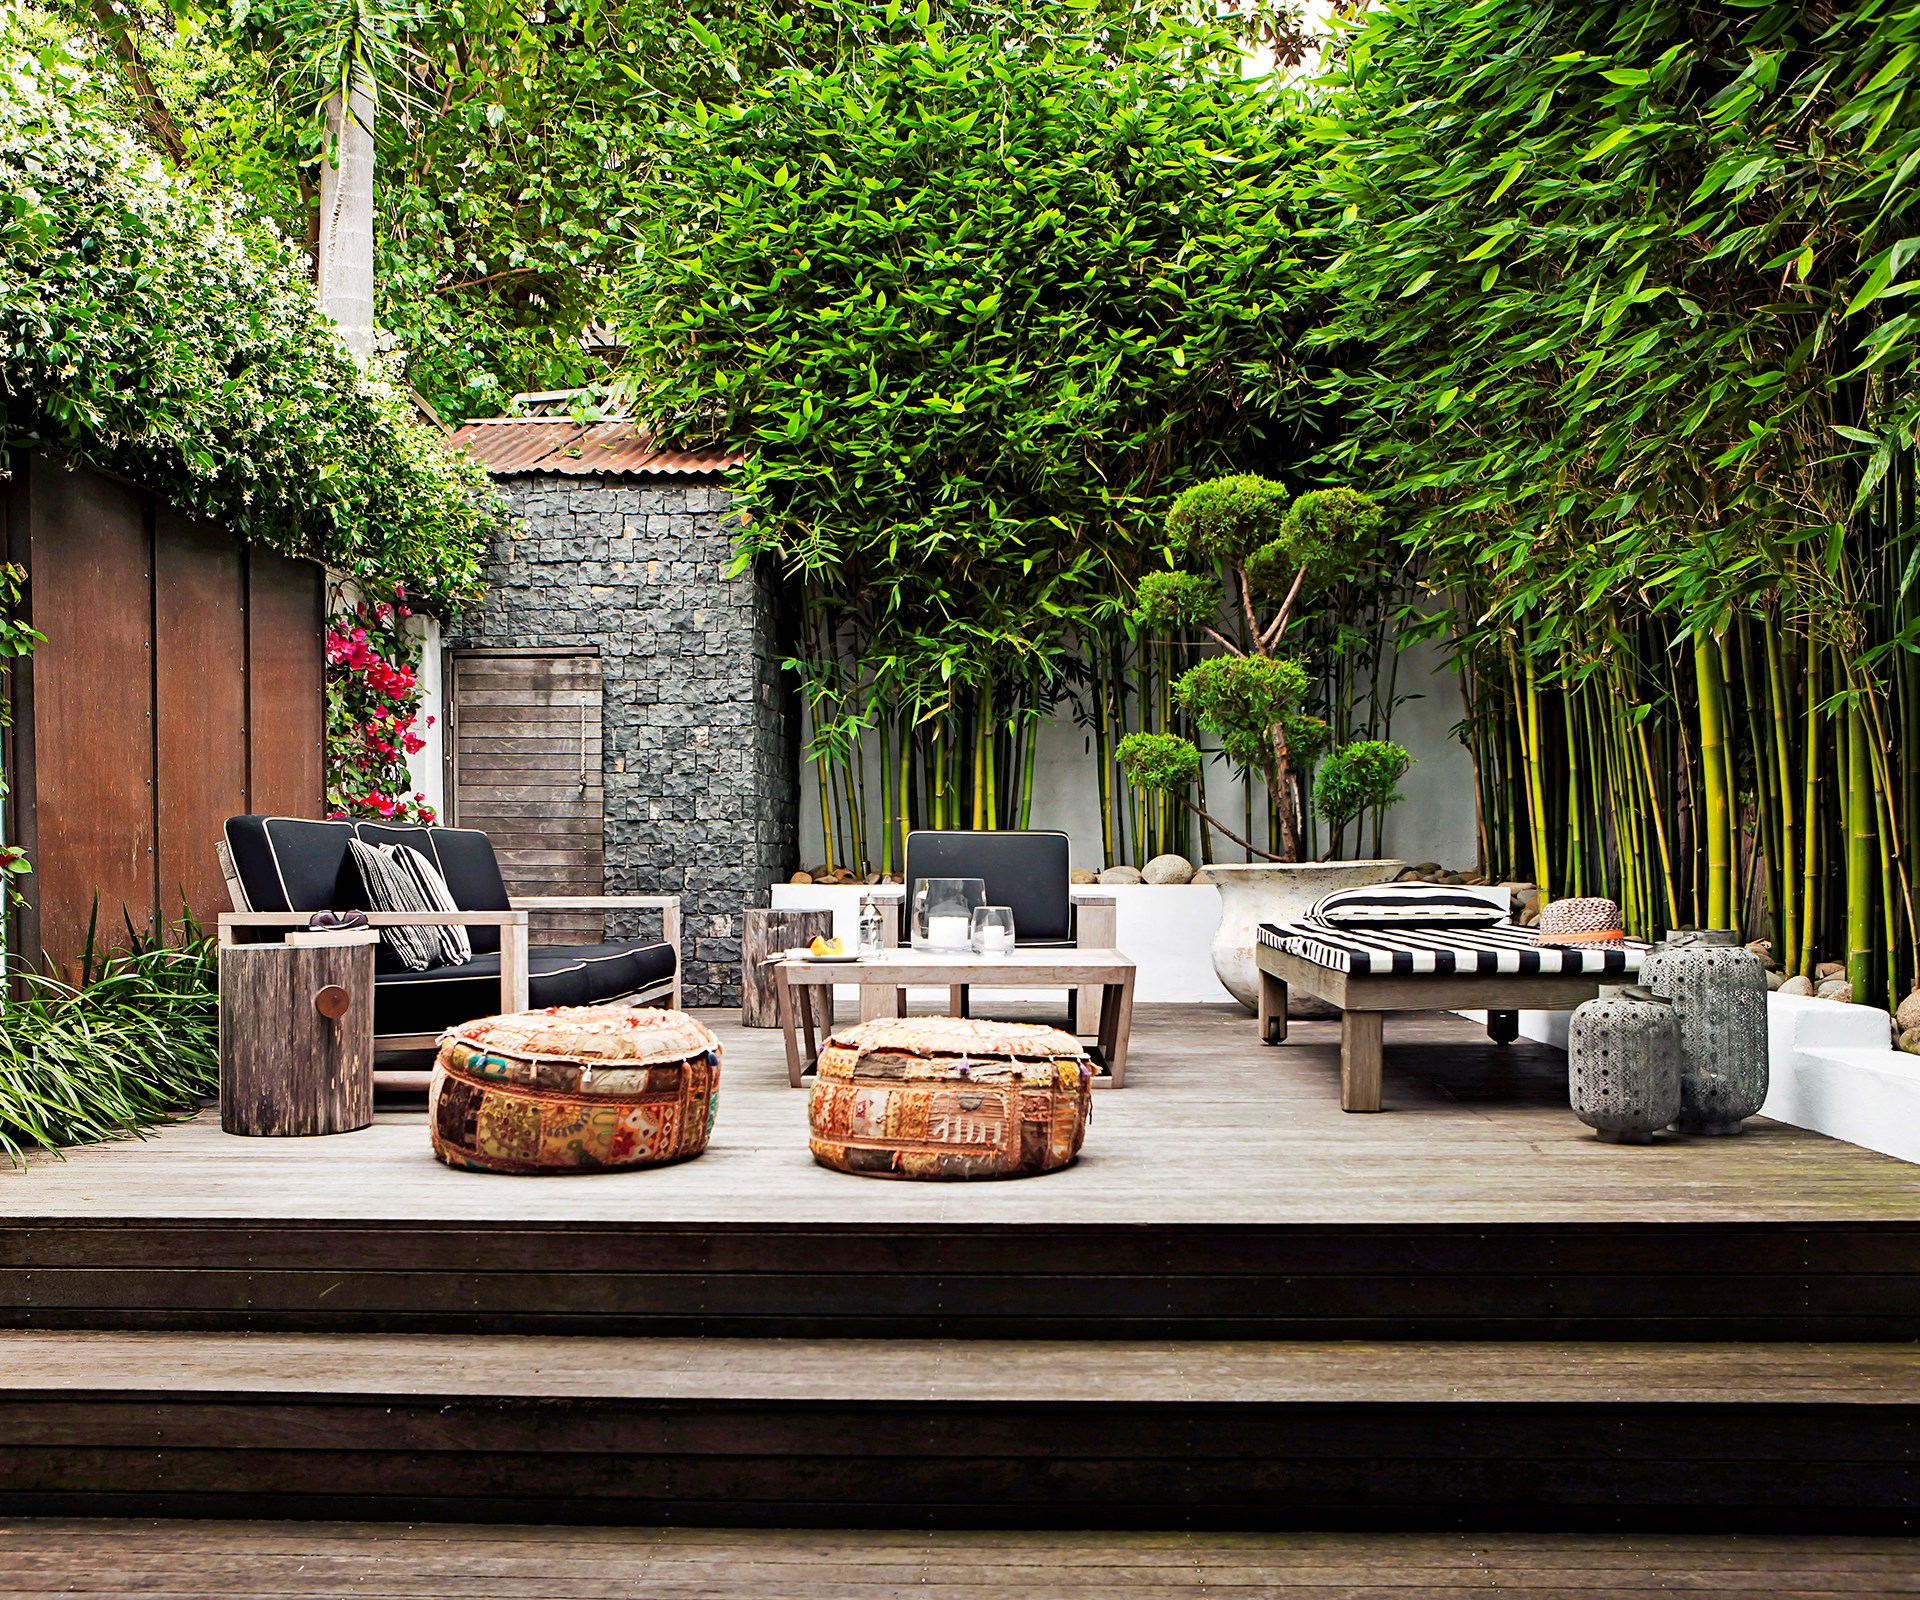 """Landscape designer [Anthony Wyer](http://anthonywyer.com/?utm_campaign=supplier/